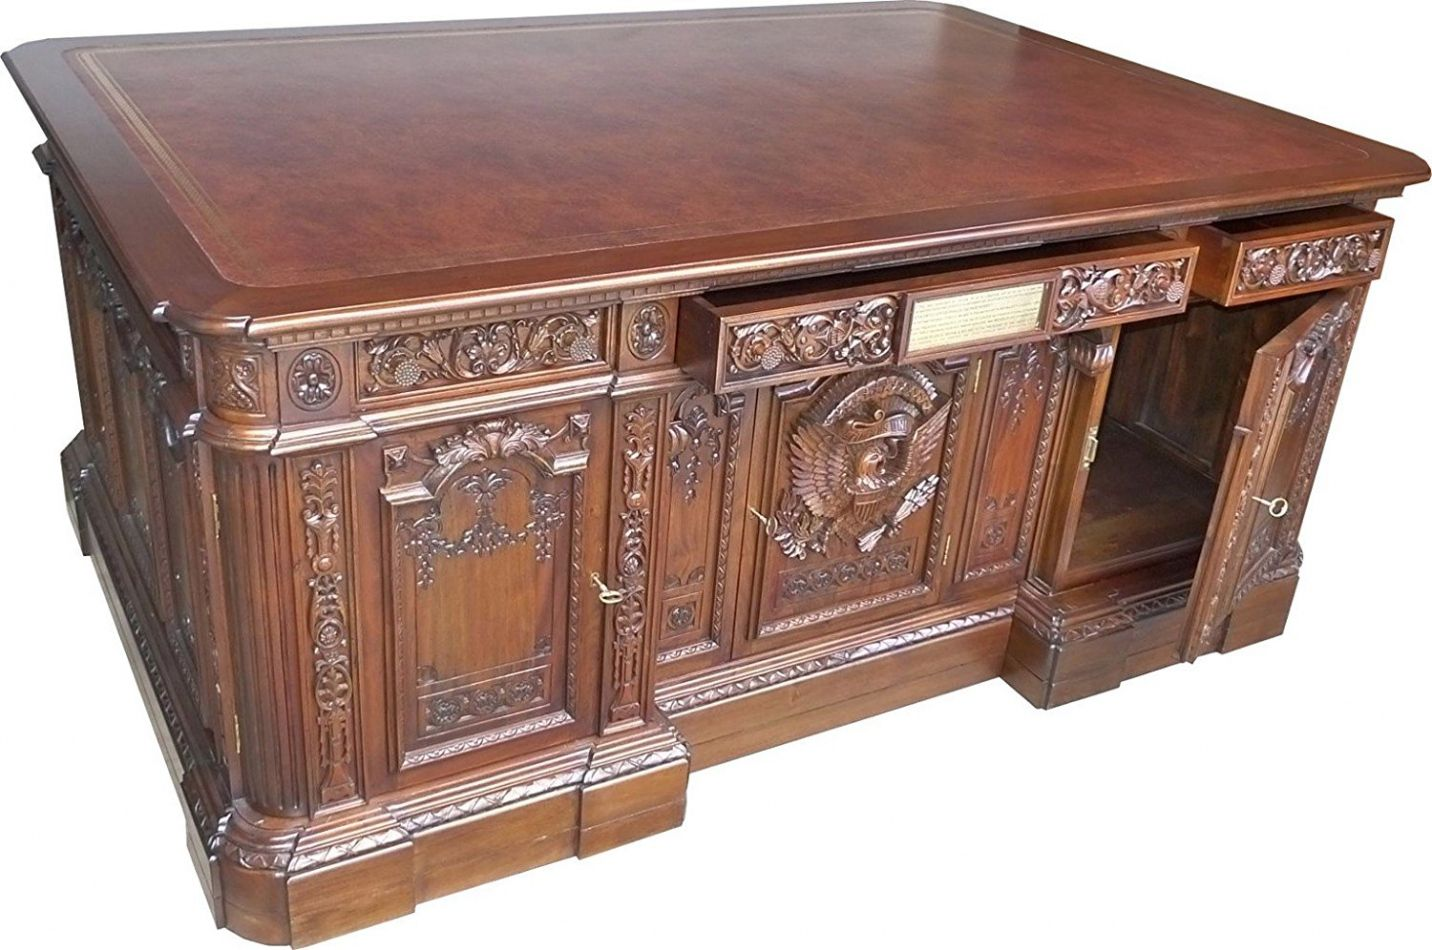 oval office desk replica. Oval Office Desk Replica - Home Furniture Ideas Check More At Http:// T